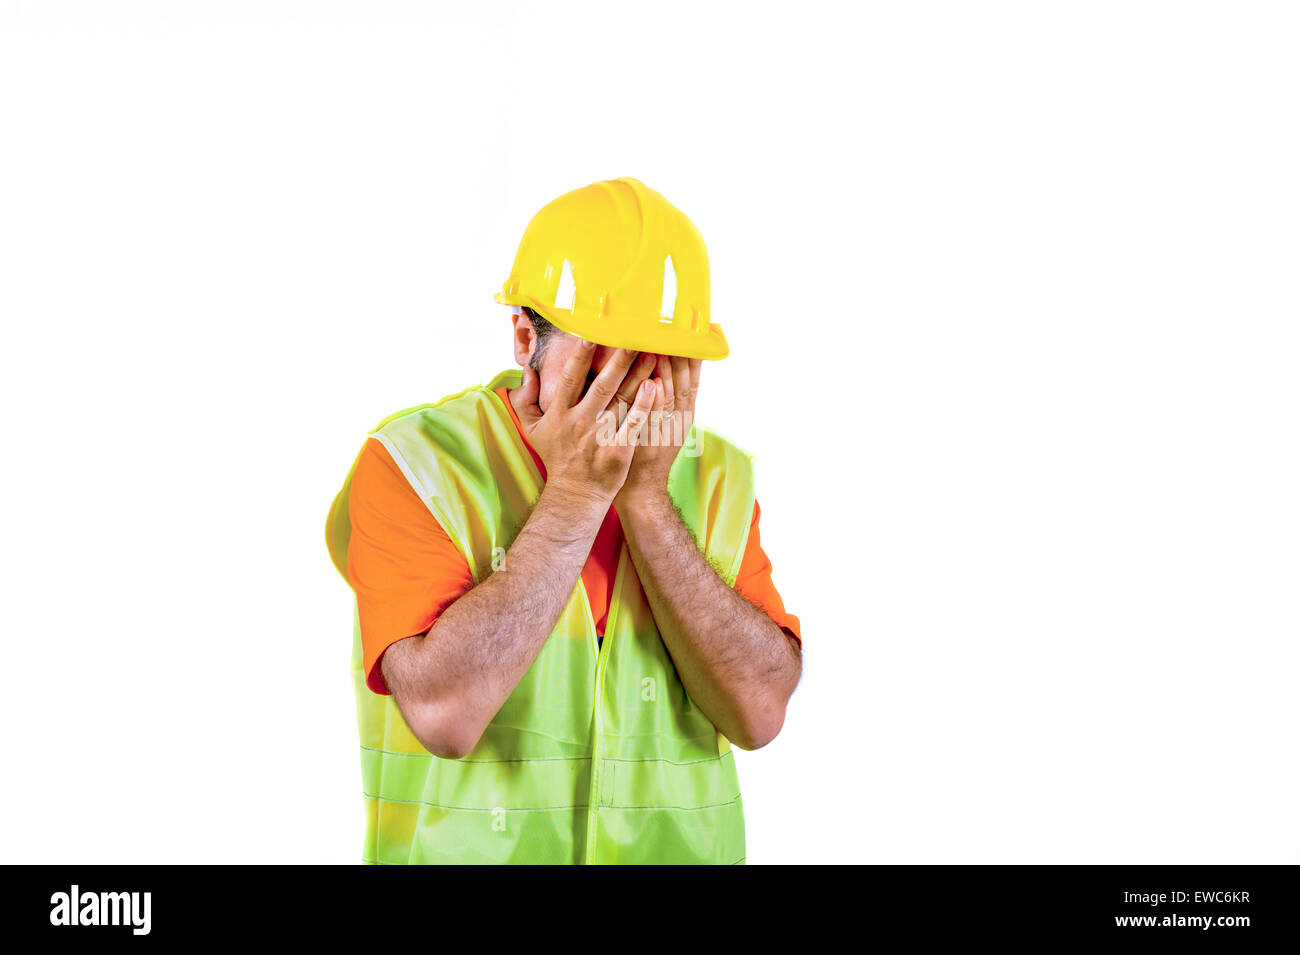 failure sadness guilty Manuel worker regretful isolated on white portrait - Stock Image